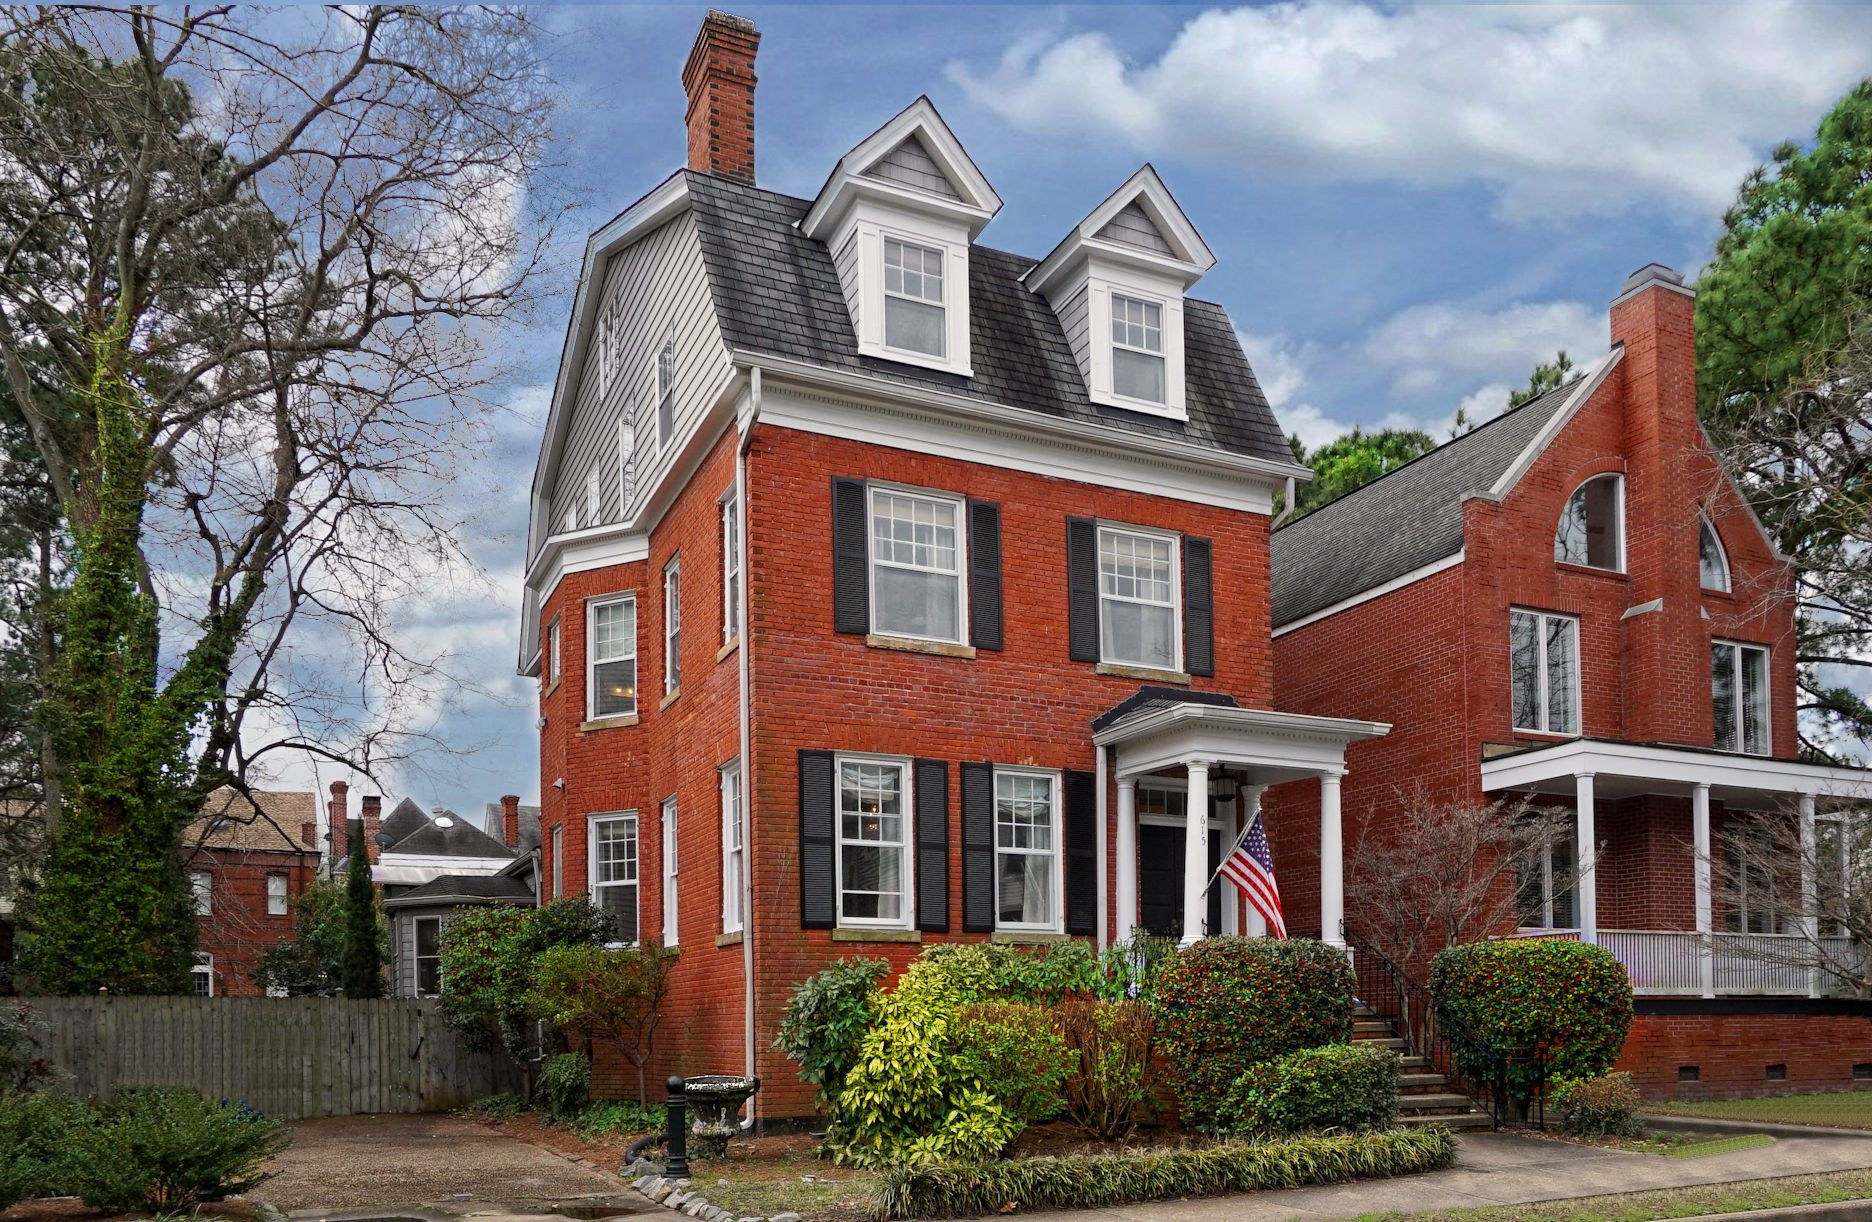 615 Raleigh Avenue: Sold!